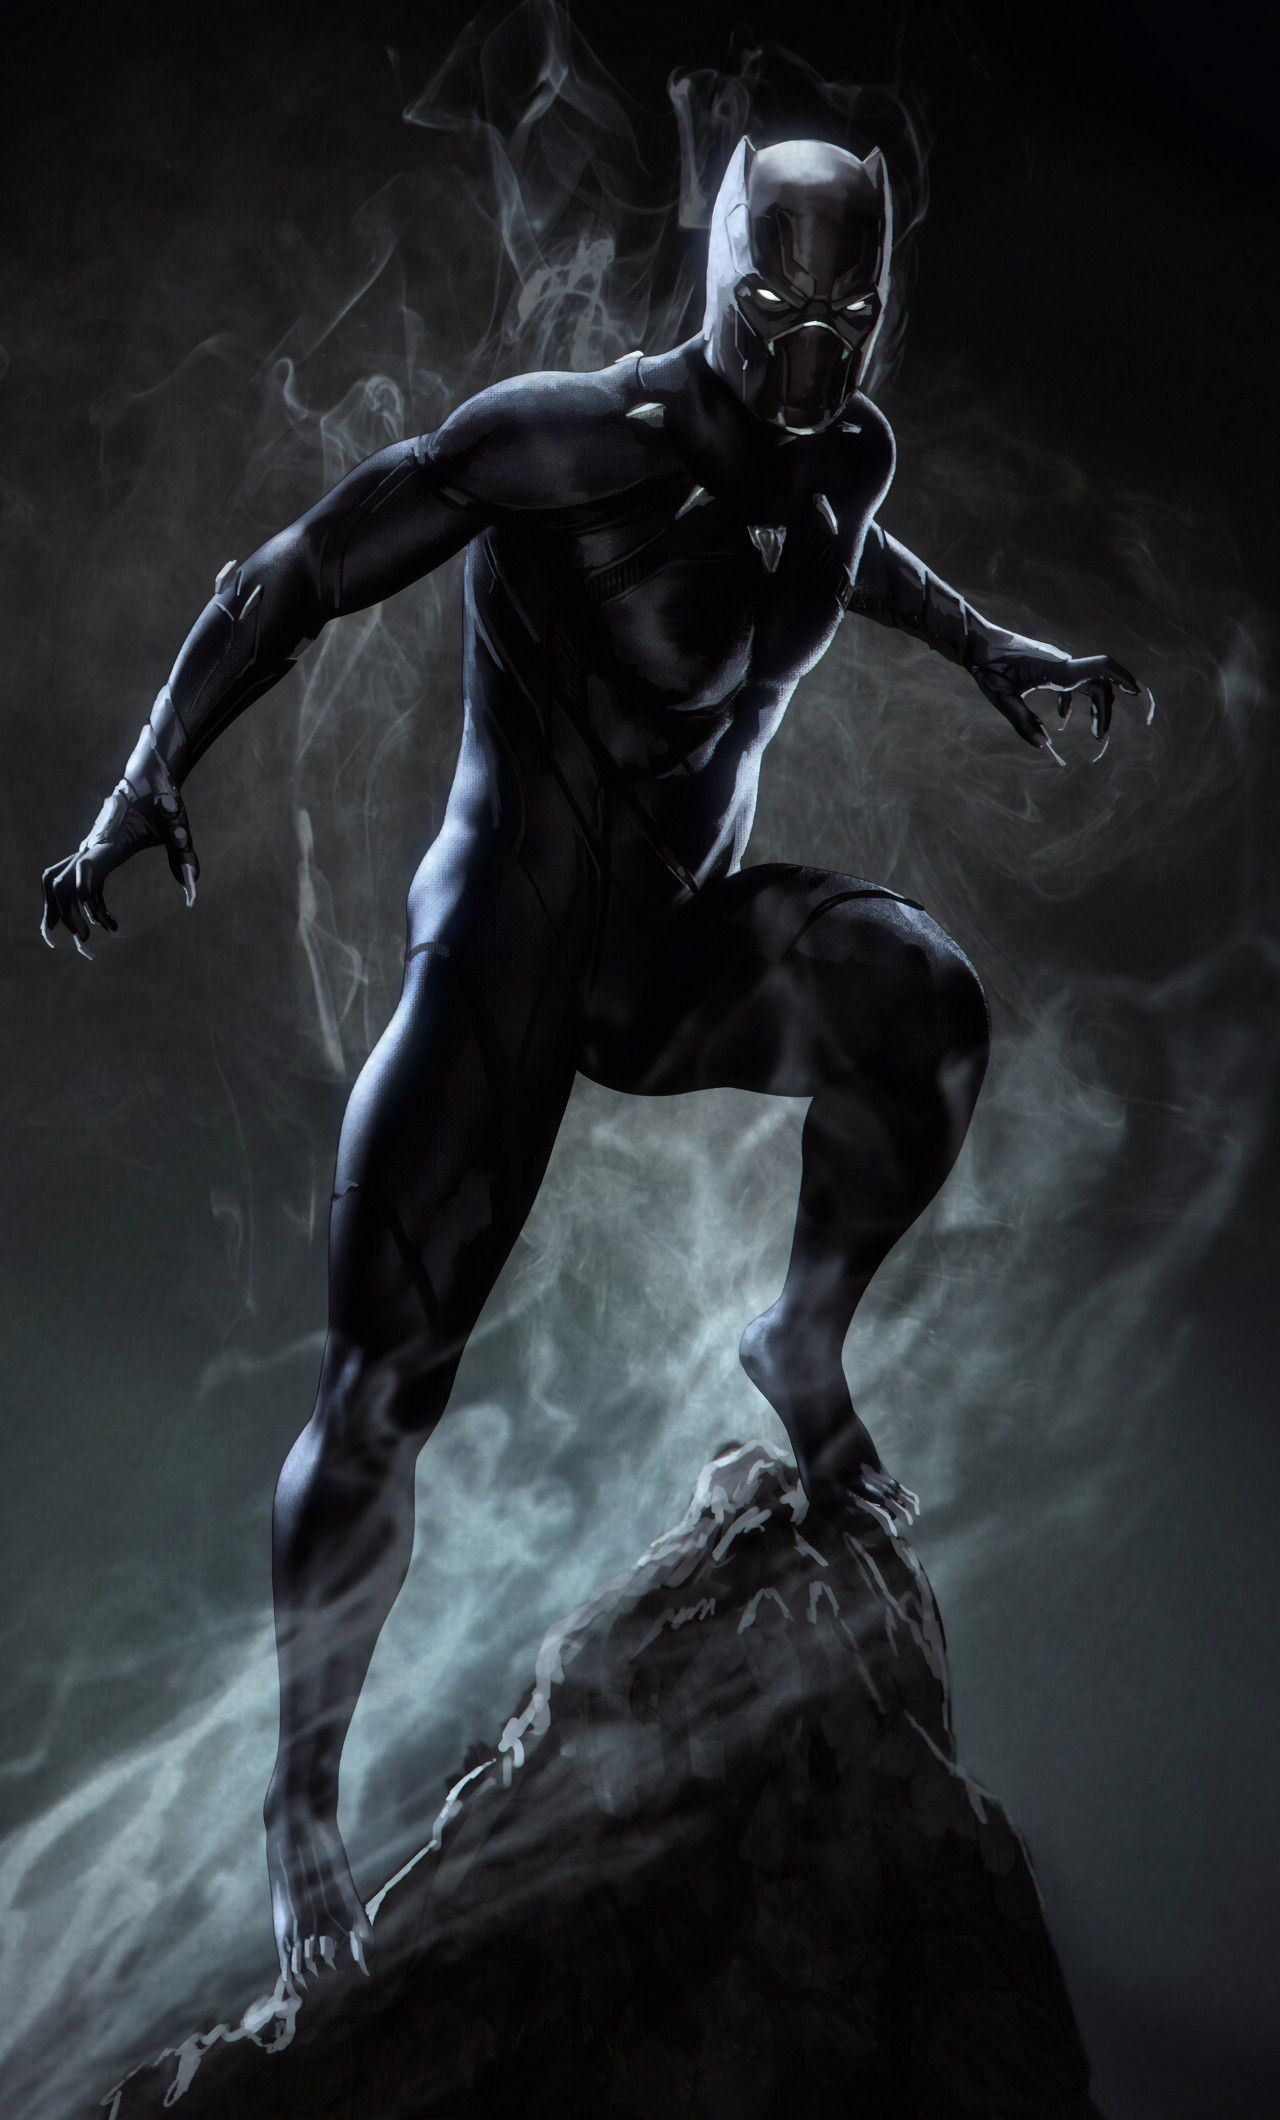 4k Wallpaper The Black Panther 3130169 Hd Wallpaper Backgrounds Download